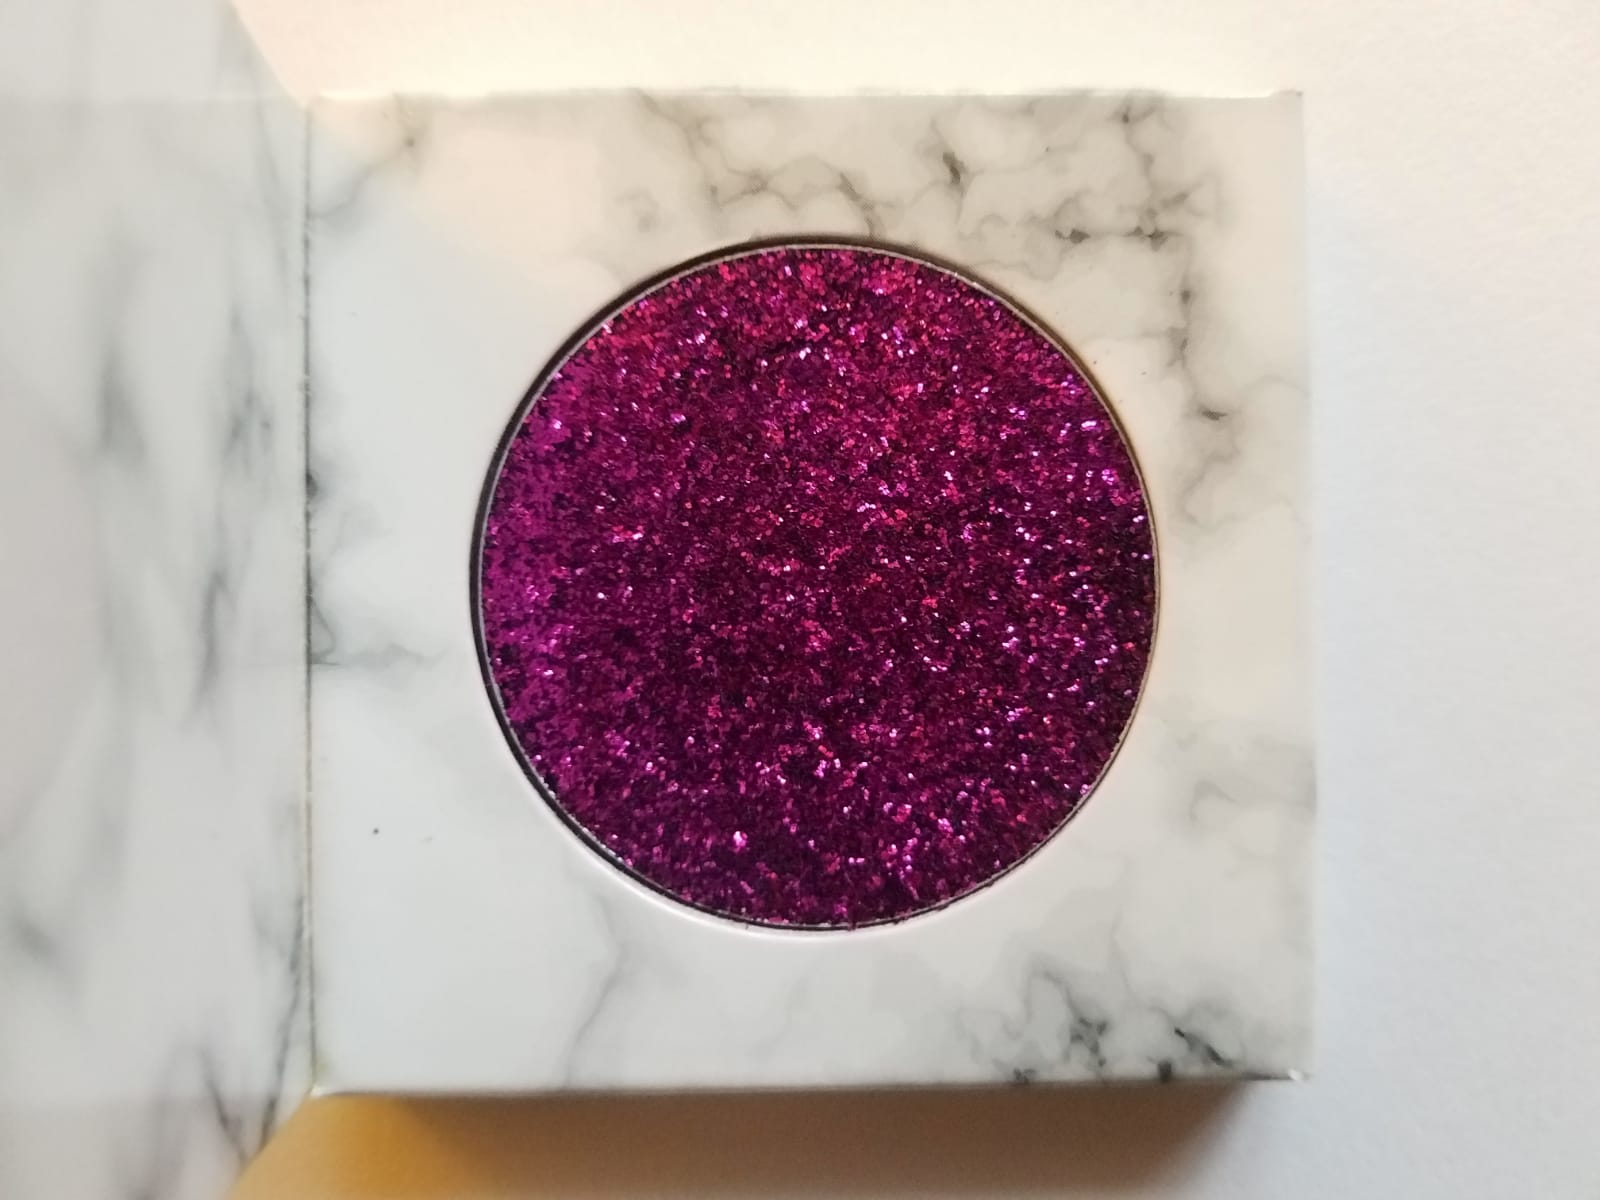 Magenta Magic Glitter Single Eyeshadow